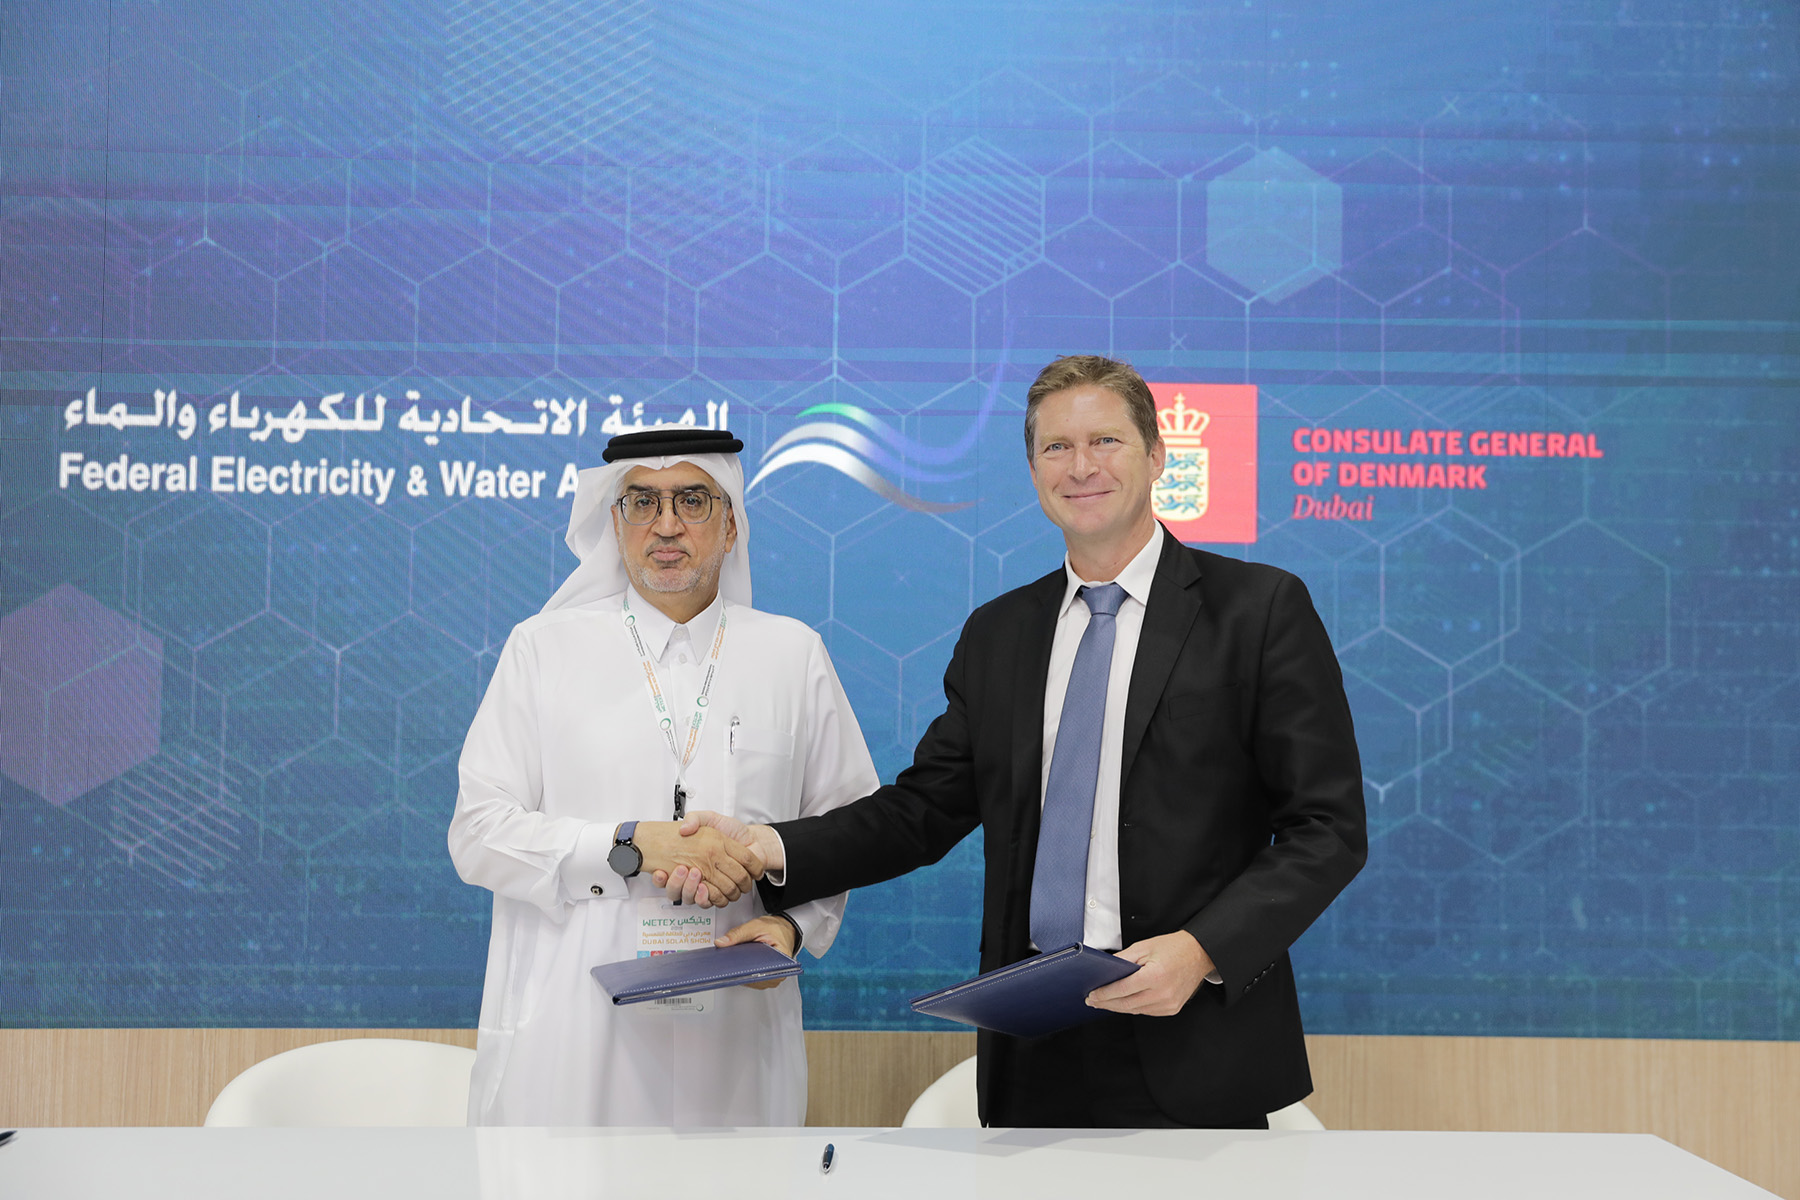 UAE's Federal Electricity and Water Authority signs MoU with the Royal Danish Consulate General in Dubai